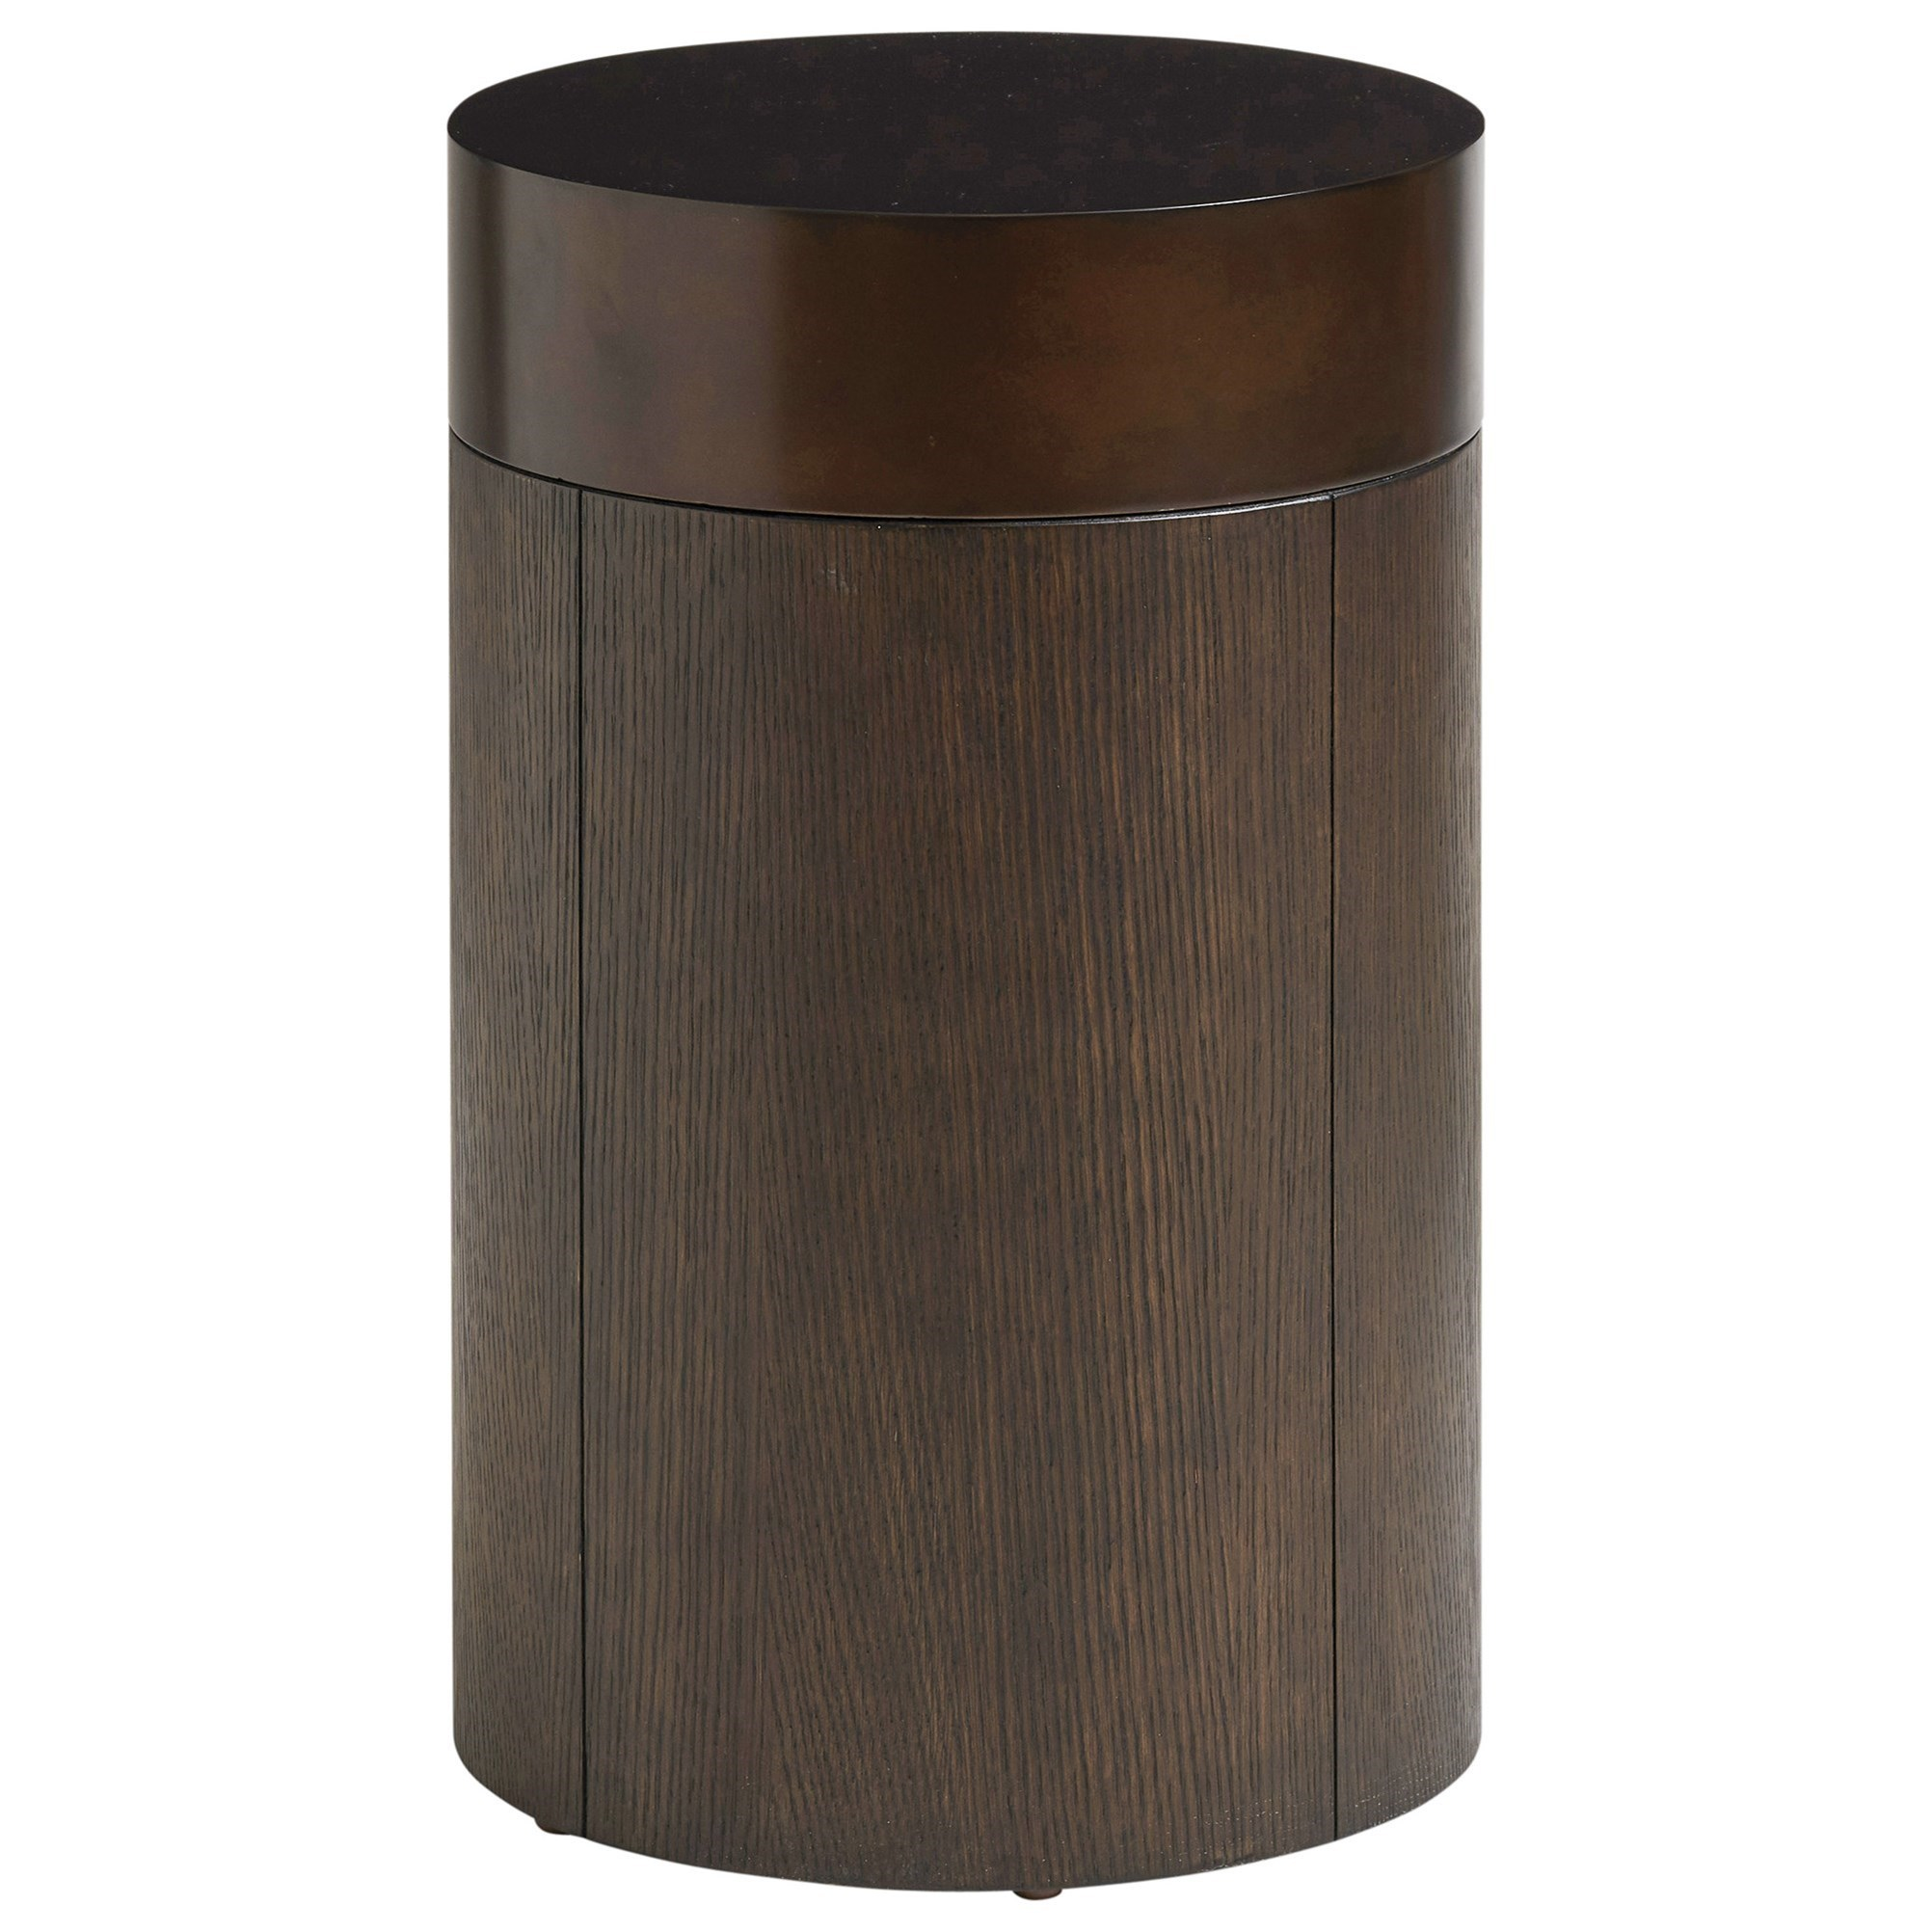 Park City Black Diamond Round End Table by Barclay Butera at Baer's Furniture